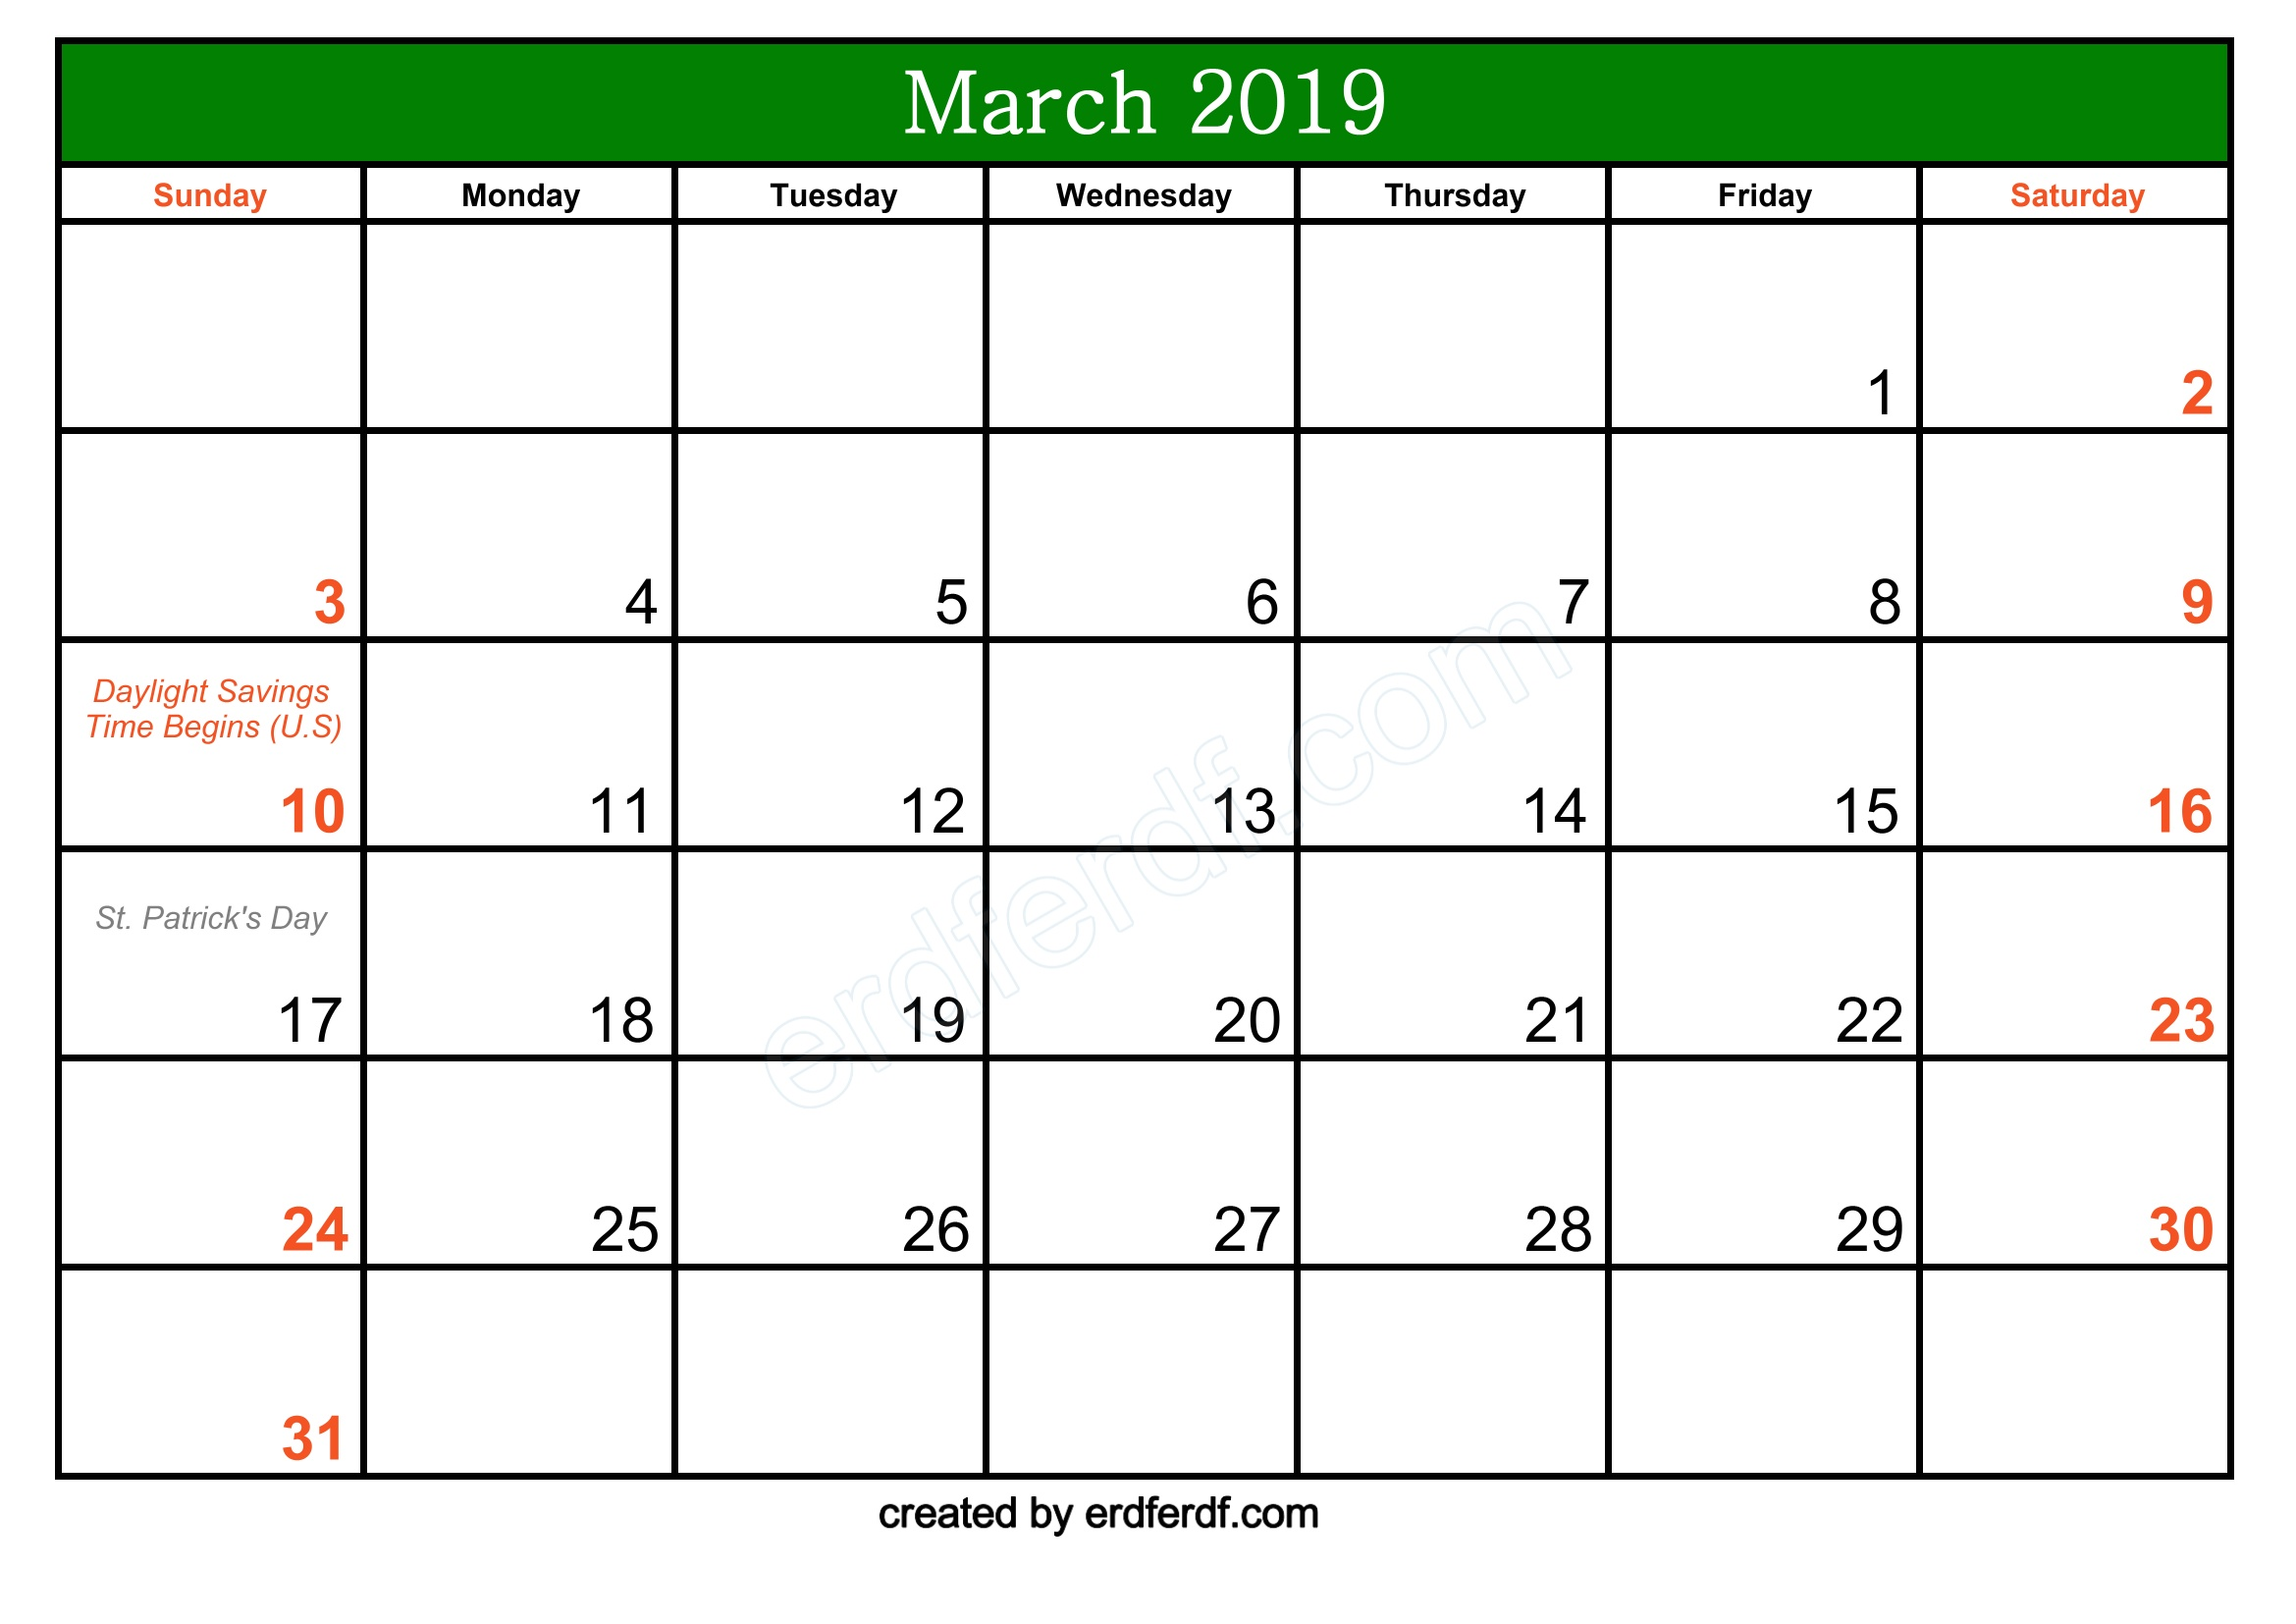 Green Header Free March 2019 Printable Calendar With Holidays